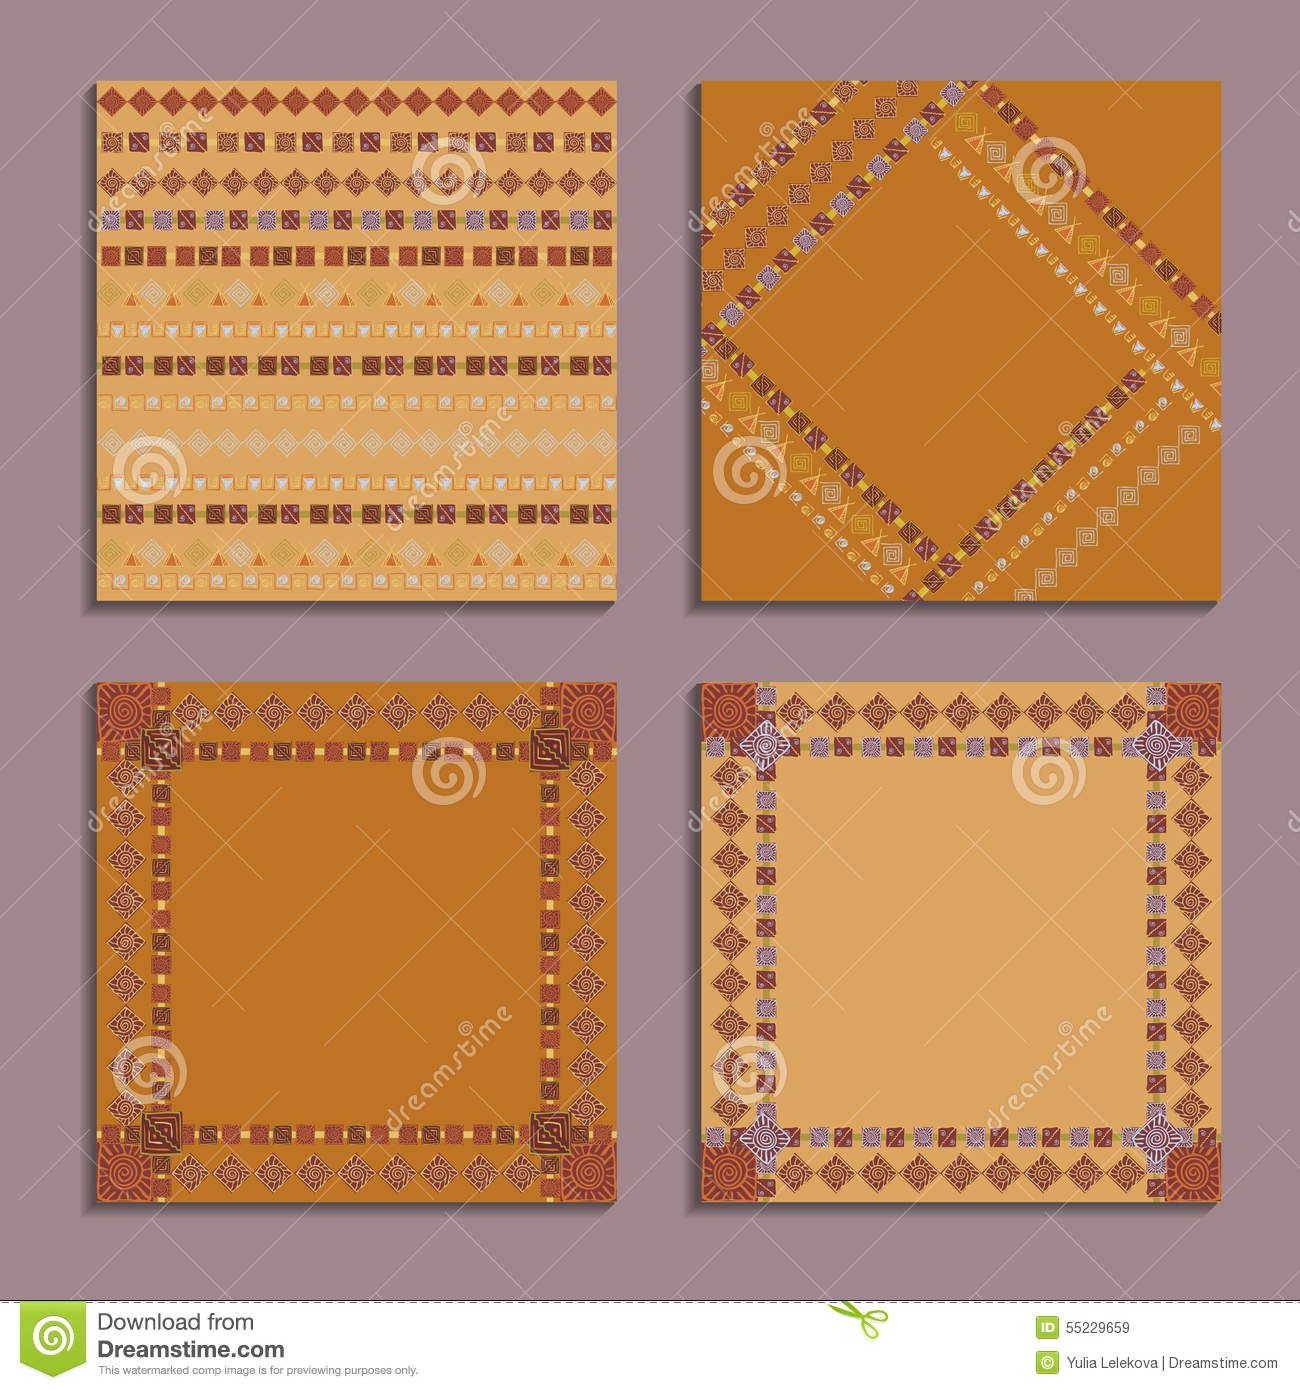 How to scrapbook wedding cards - Set Of Cards With Ethnic Design Templates For Invitation Scrapbook Or Wedding Card